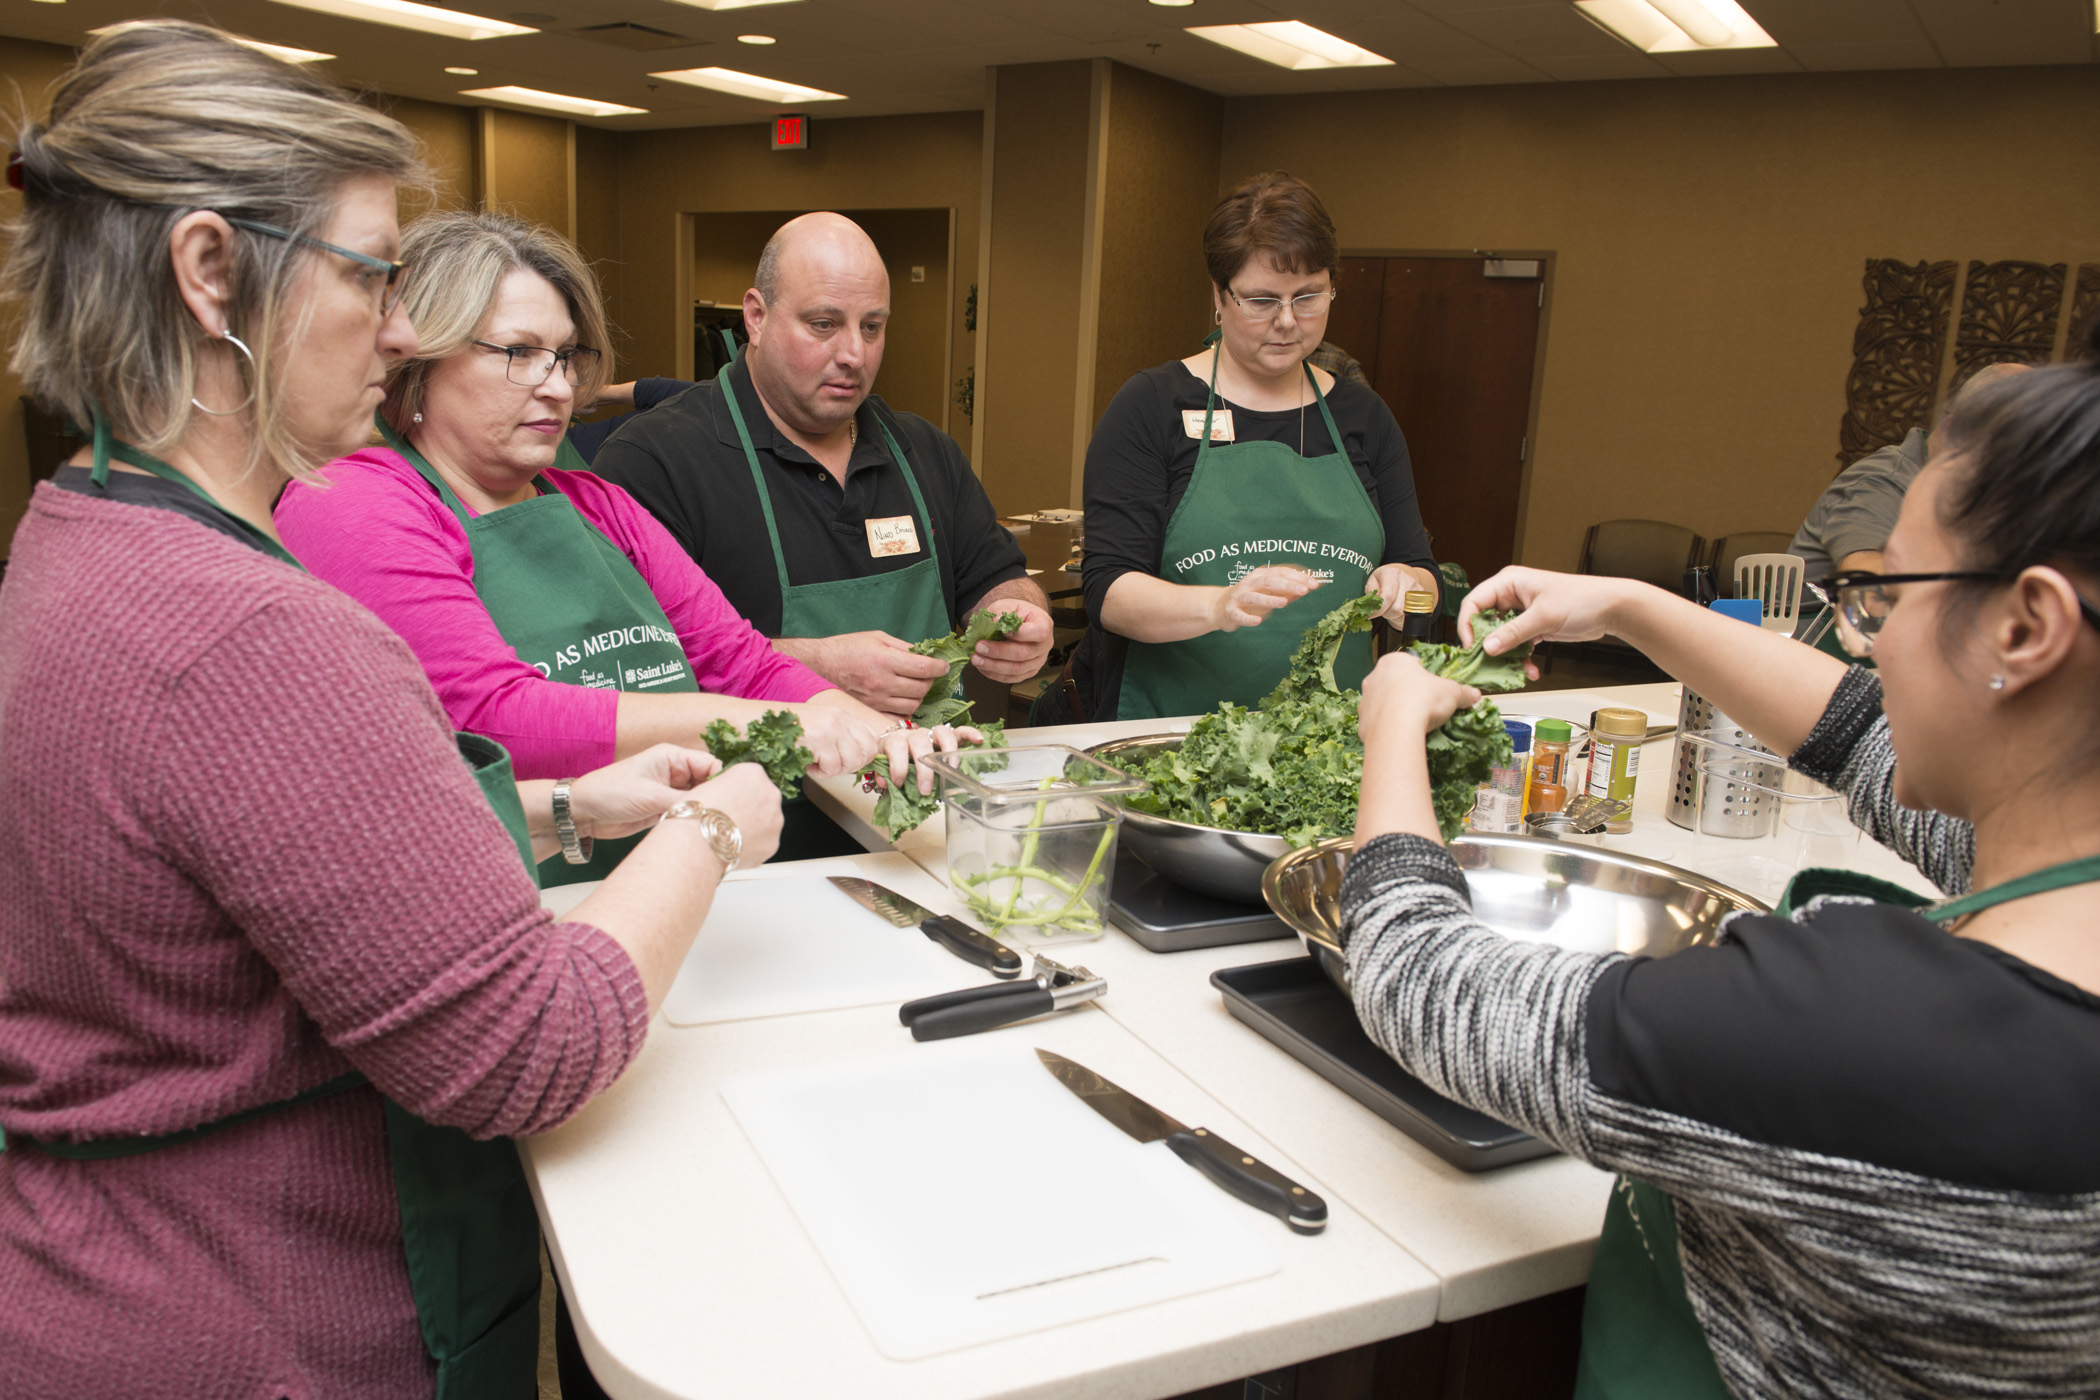 A Food as Medicine Everyday program instructor demonstrates in front of class.